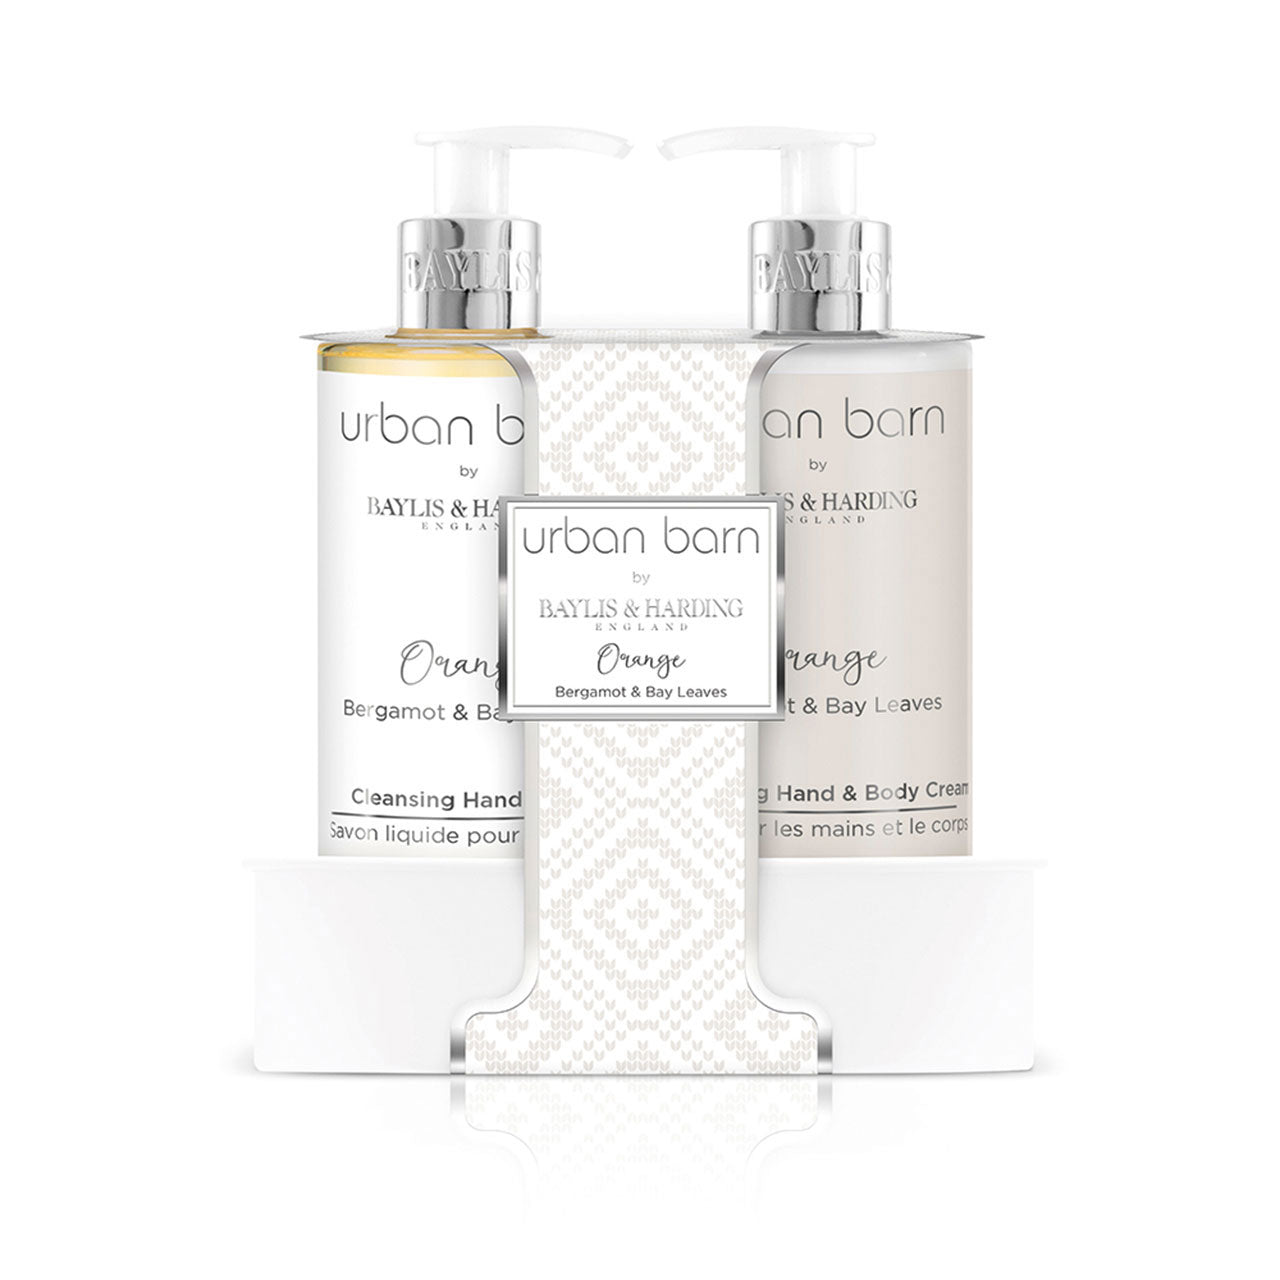 Baylis & Harding Urban Barn Luxury Hand Care Set